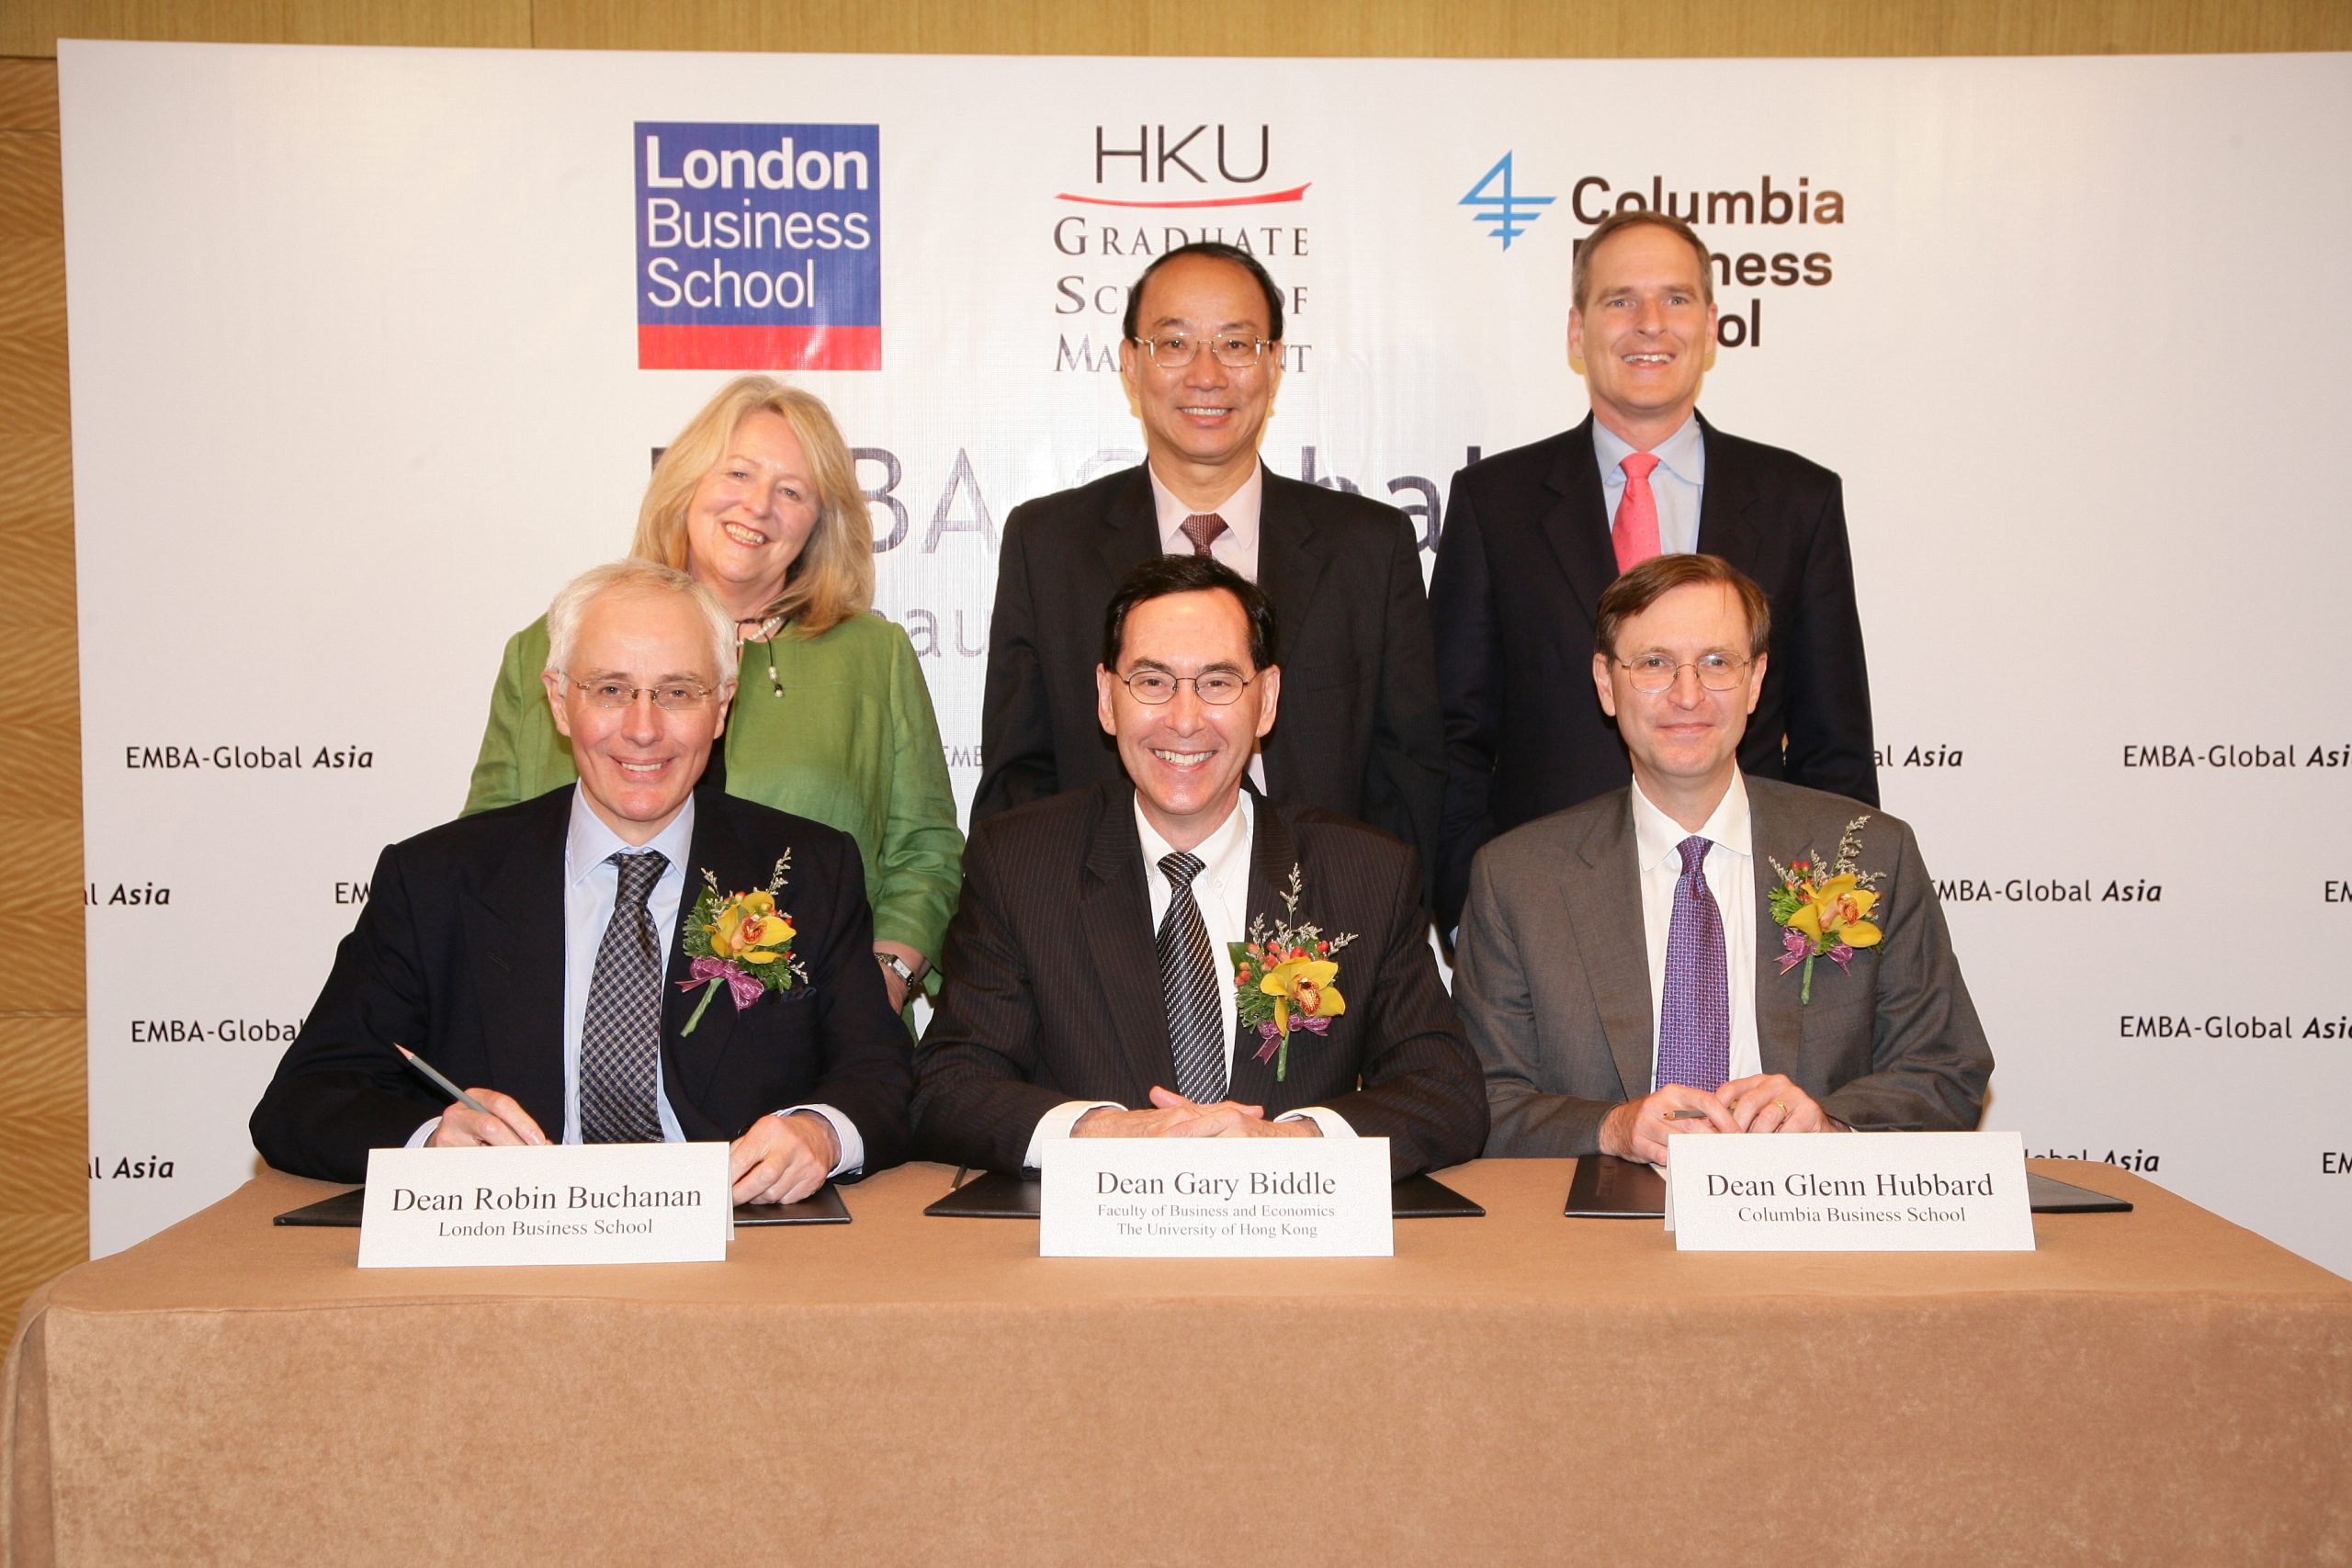 EMBA-Global Asia programme launched in partnership with London Business School and Columbia Business School